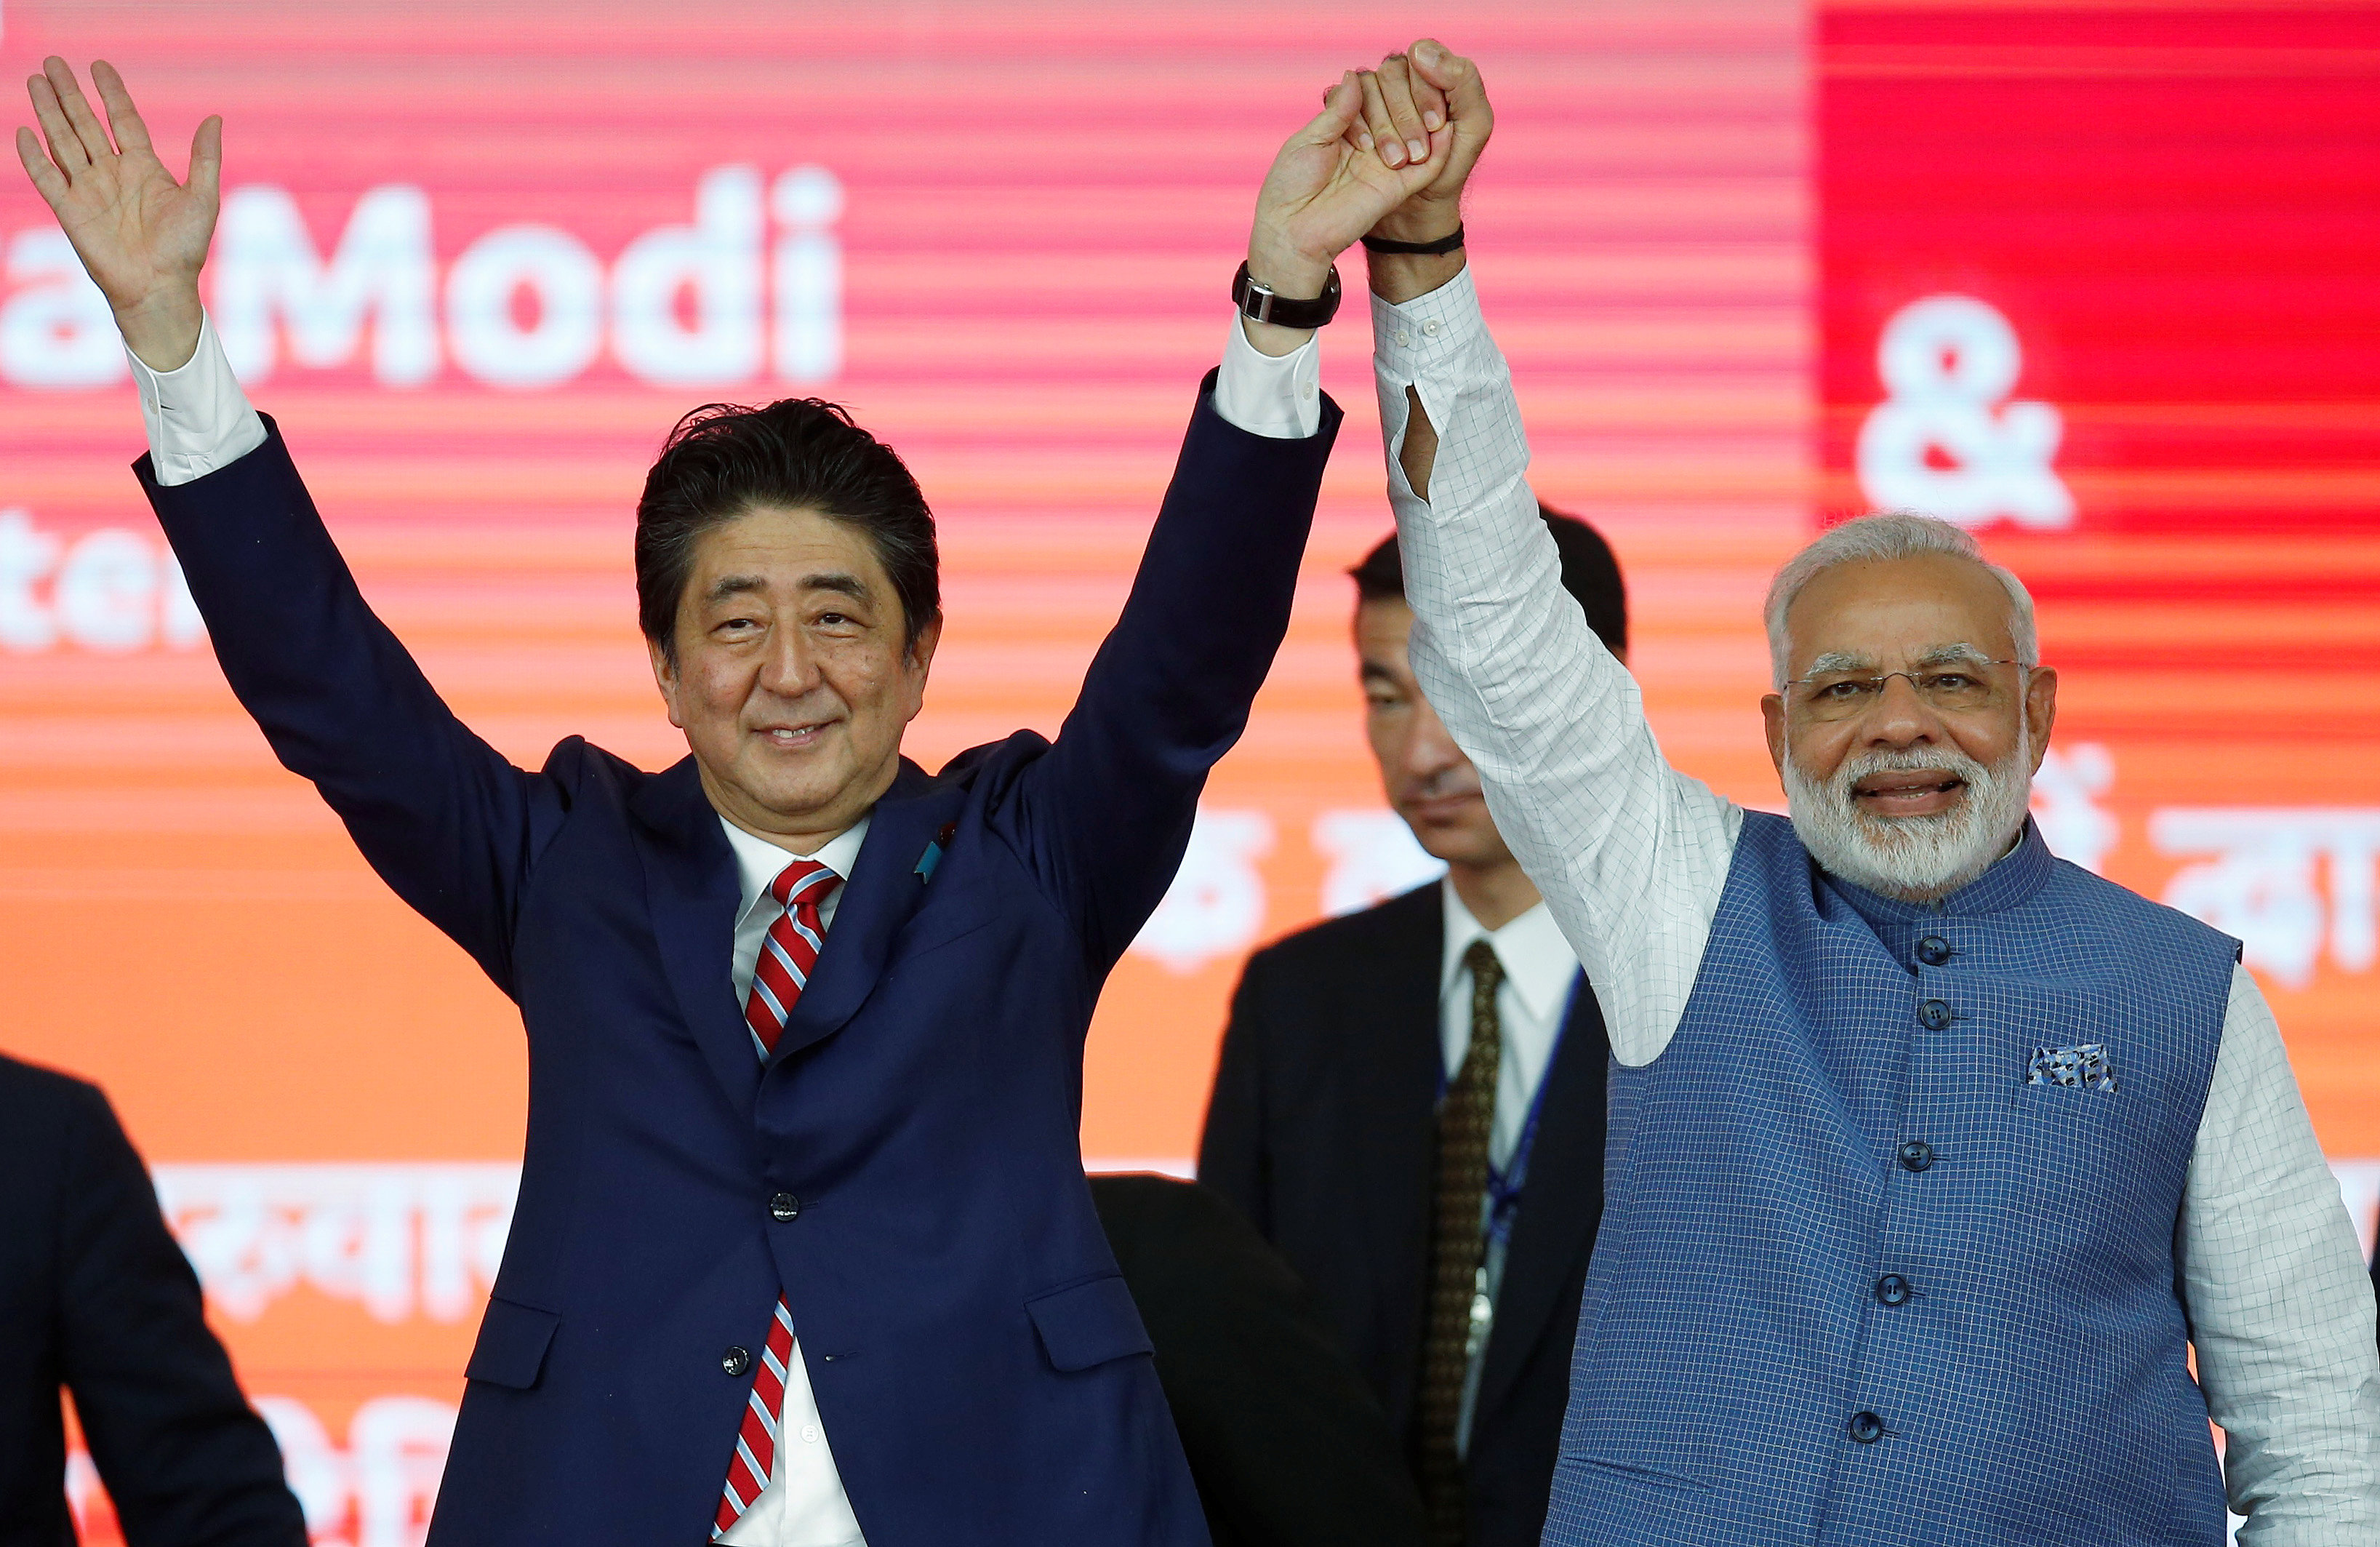 Japanese Prime Minister Shinzo Abe (L) and his Indian counterpart Narendra Modi raise hands after the groundbreaking ceremony for a high-speed rail project in Ahmedabad, India, September 14, 2017. REUTERS/Amit Dave